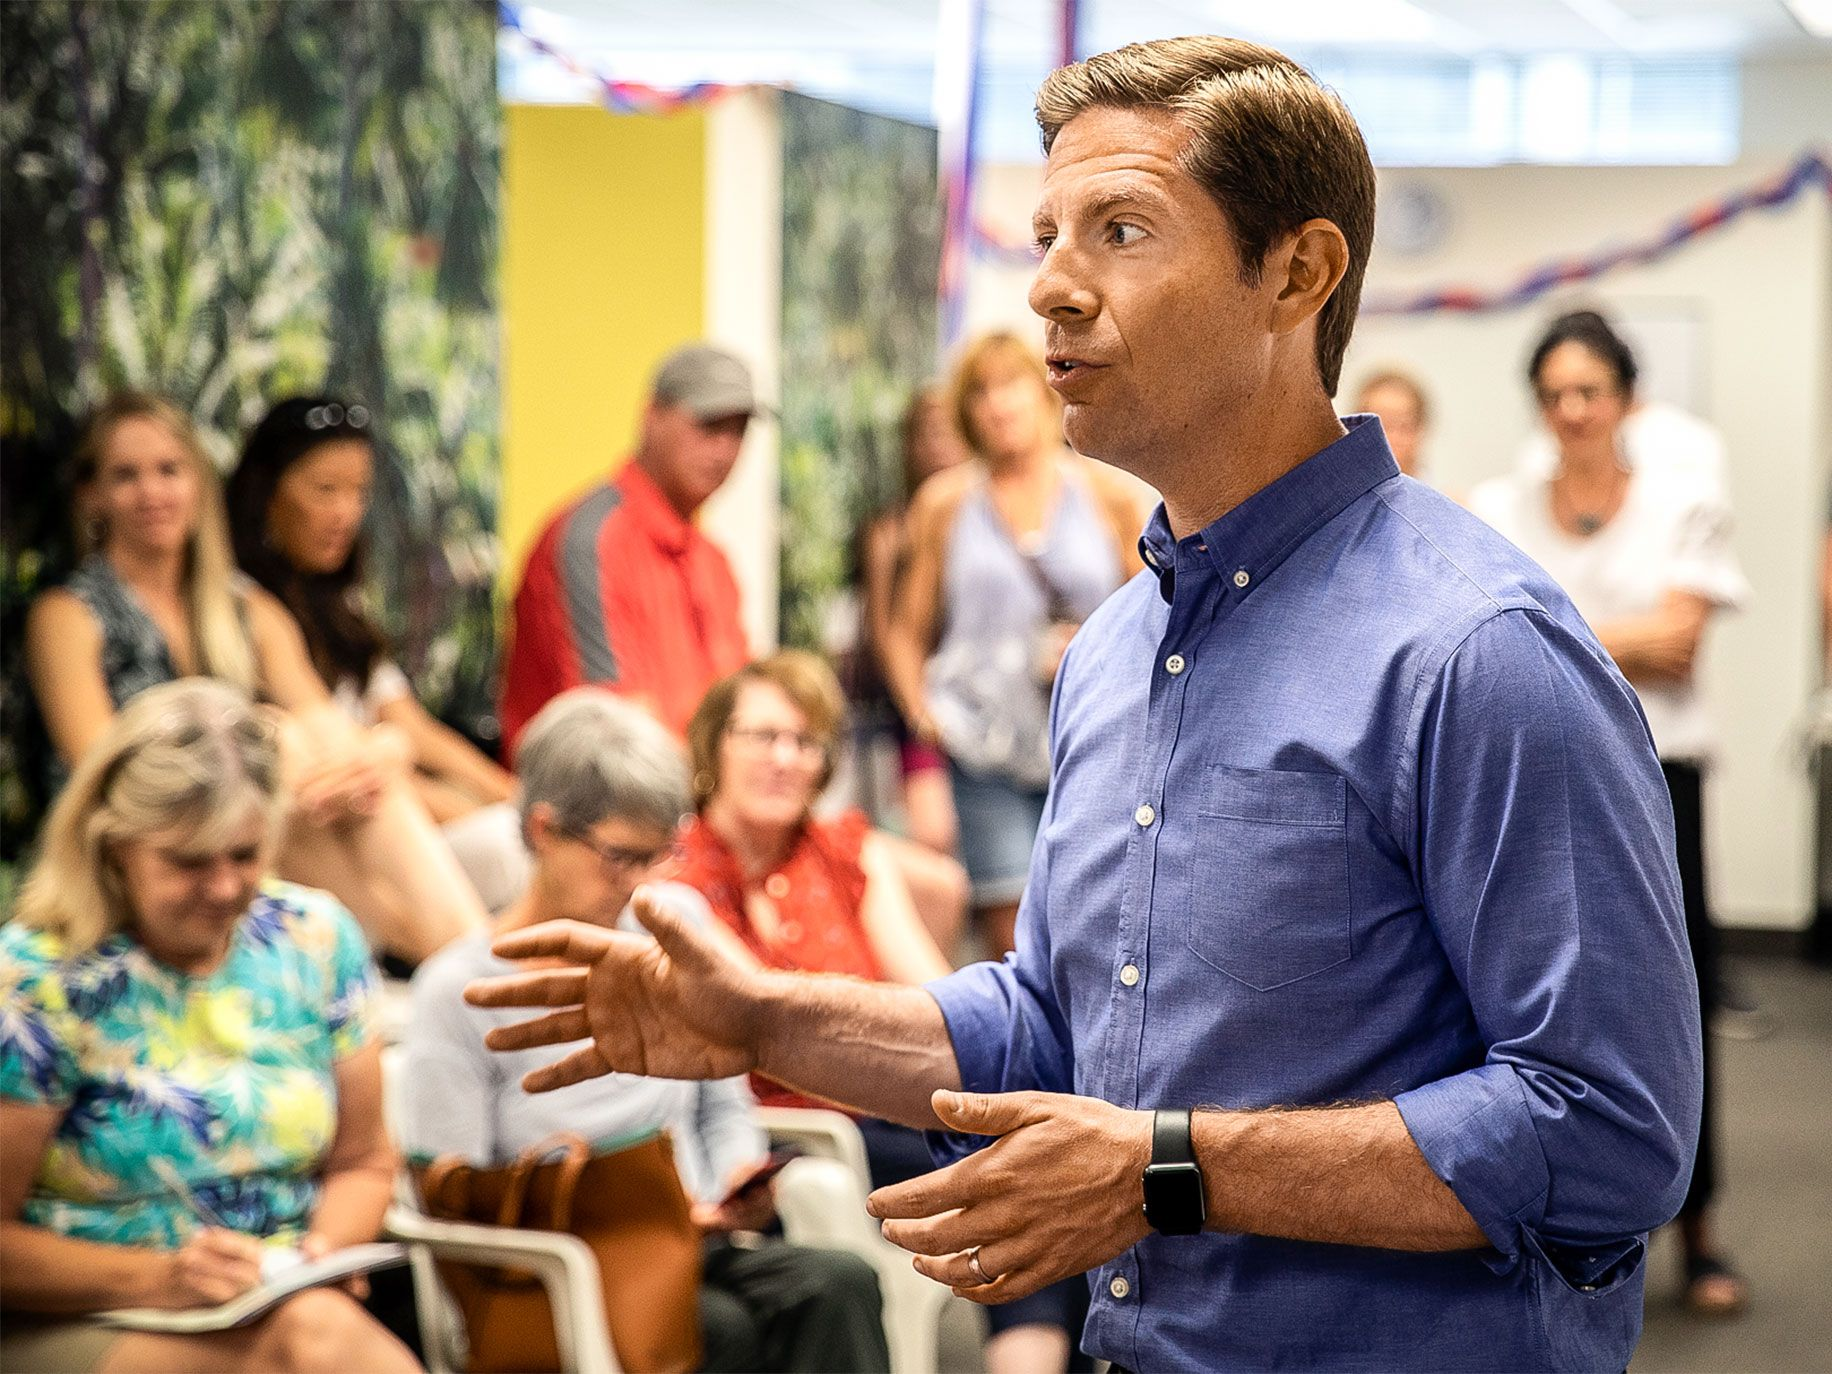 Democratic candidate Mike Levin at a campaign event. Levin is running for California's 49th Congressional District seat and facing an increasingly diverse — and more Democrat-friendly — electorate.